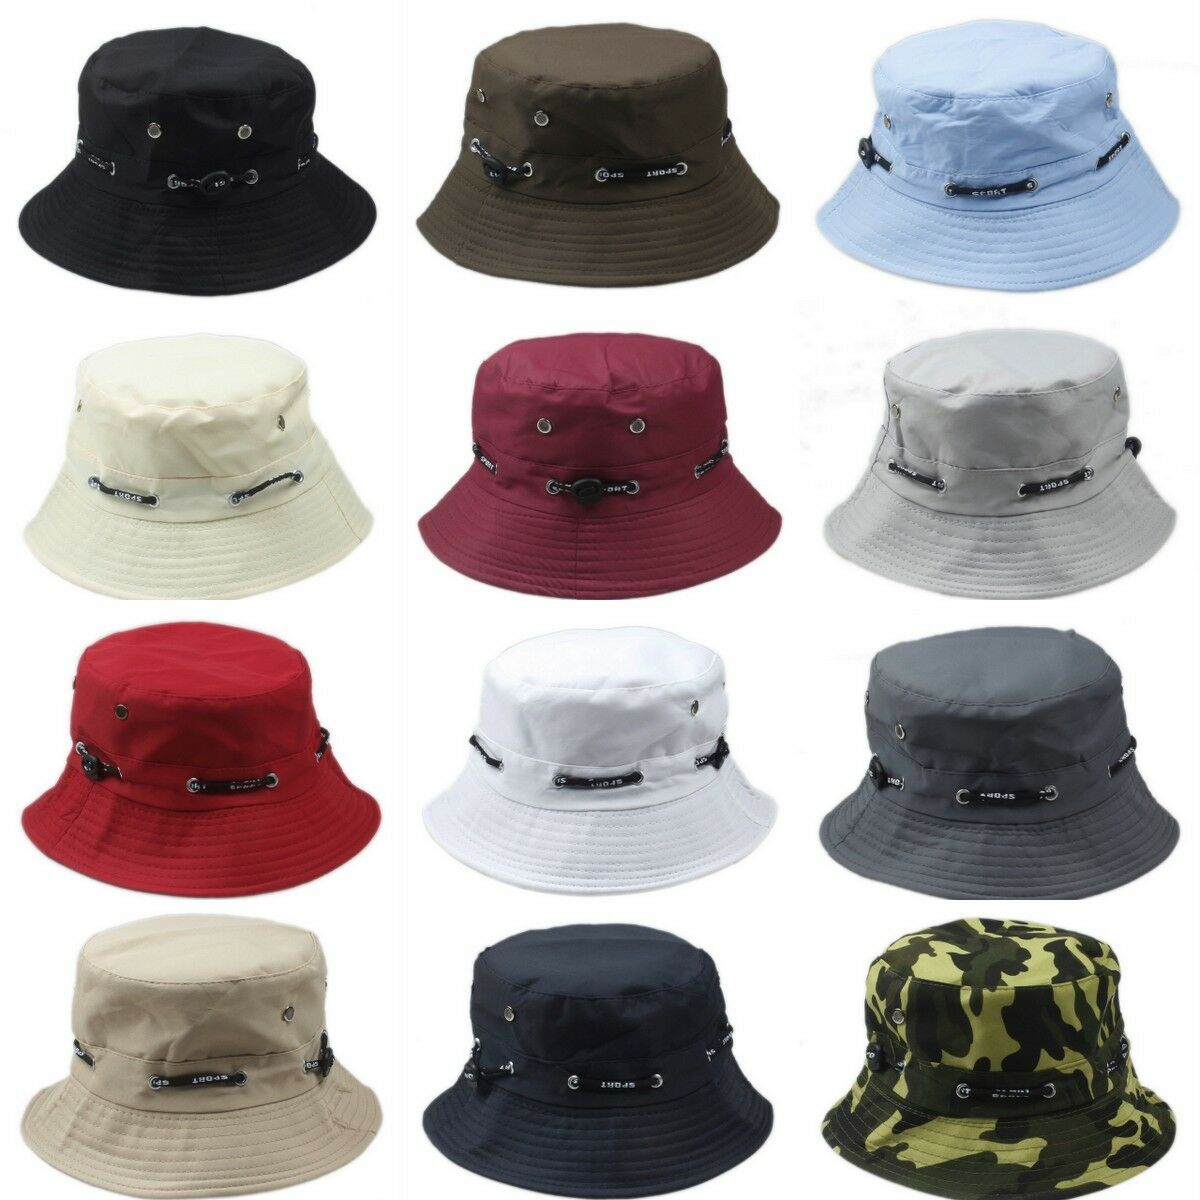 Men Women Floral Printed Bucket Cap Summer Fishing Holiday Travel Casual Hats Clothing, Shoes & Accessories